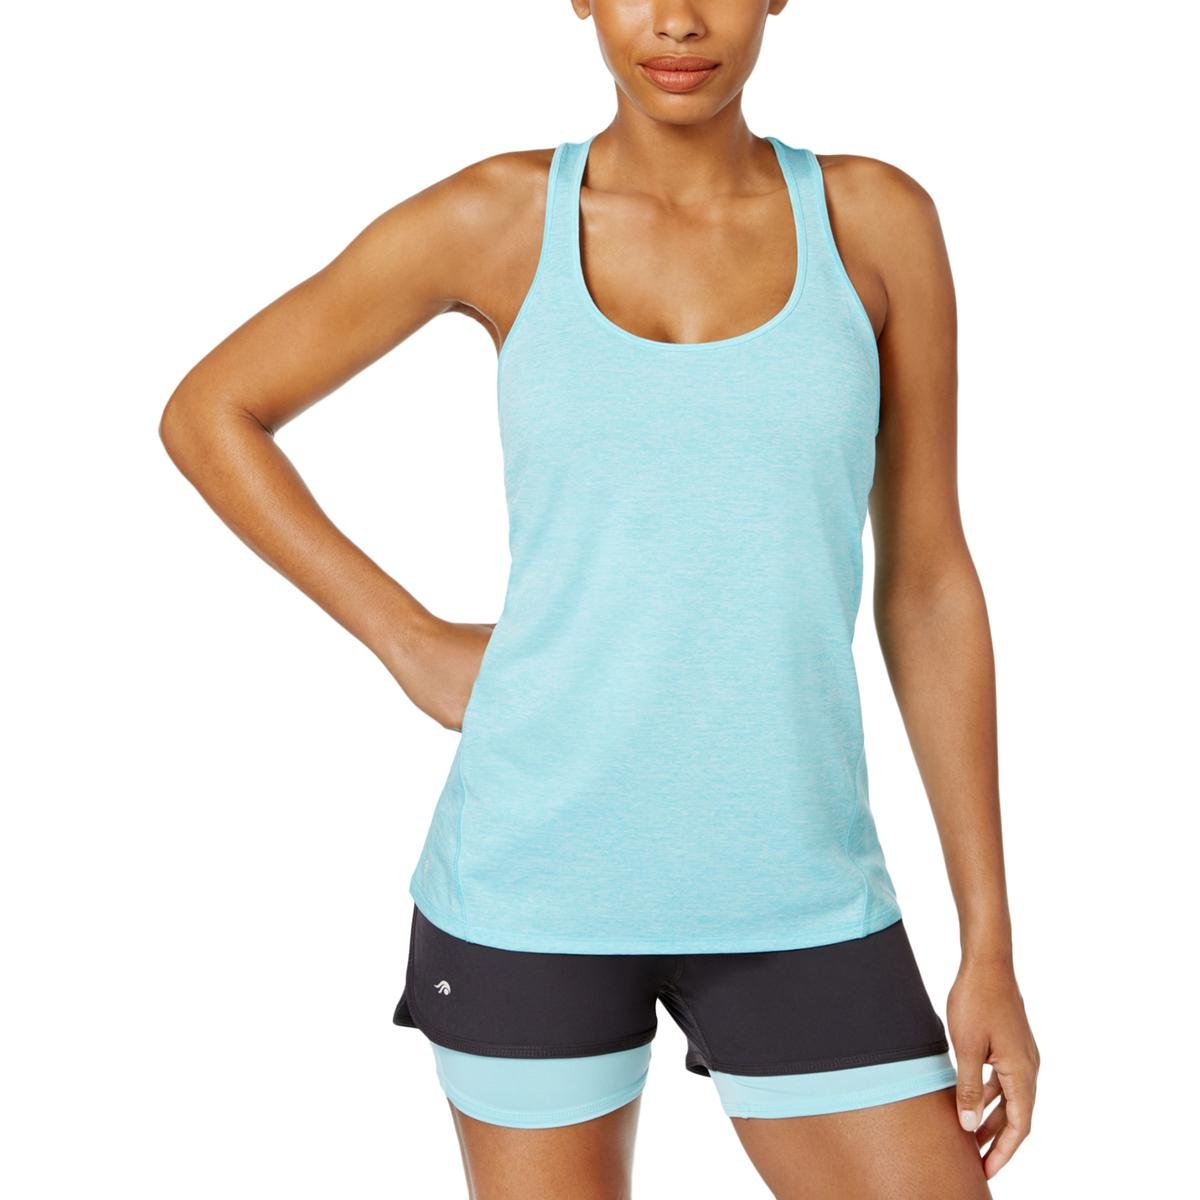 Ideology Womens Yoga Fitnesss Tank Top Blue M